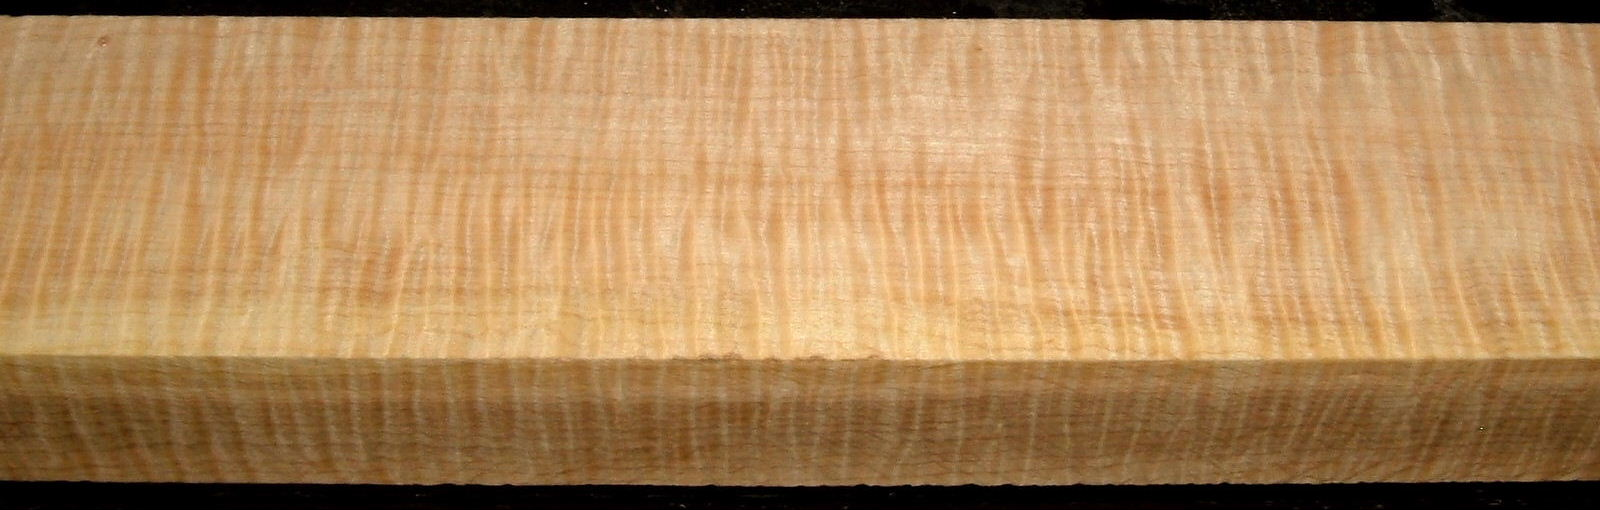 QS2001-12, 1-1/2x2-3/4x38, Quartersawn Curly Maple